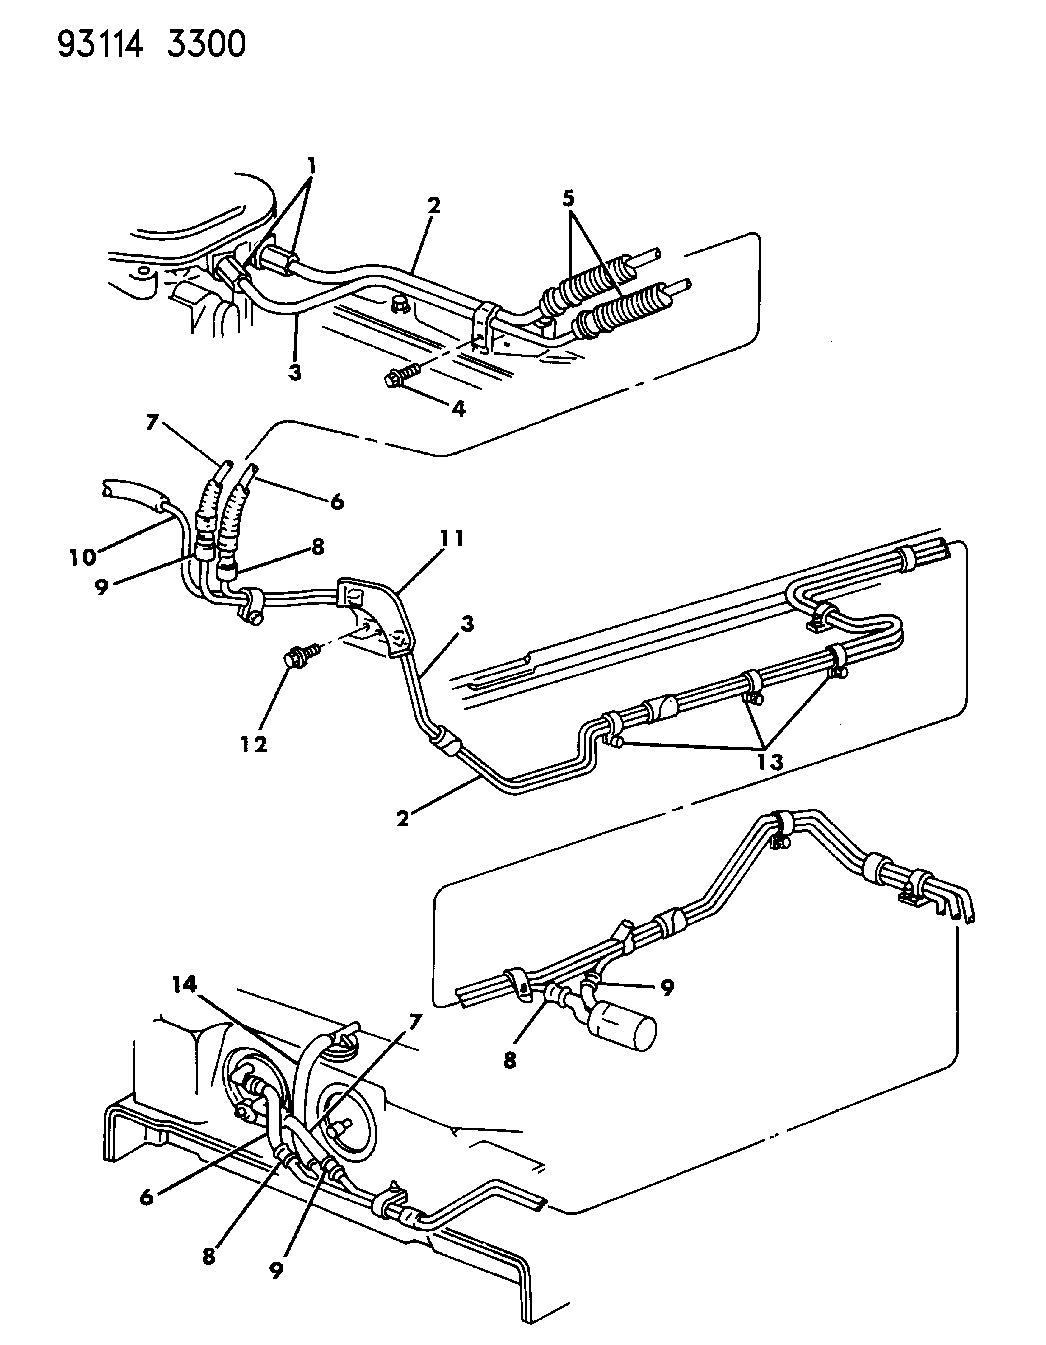 1993 Chrysler New Yorker Fifth Avenue Fuel Lines